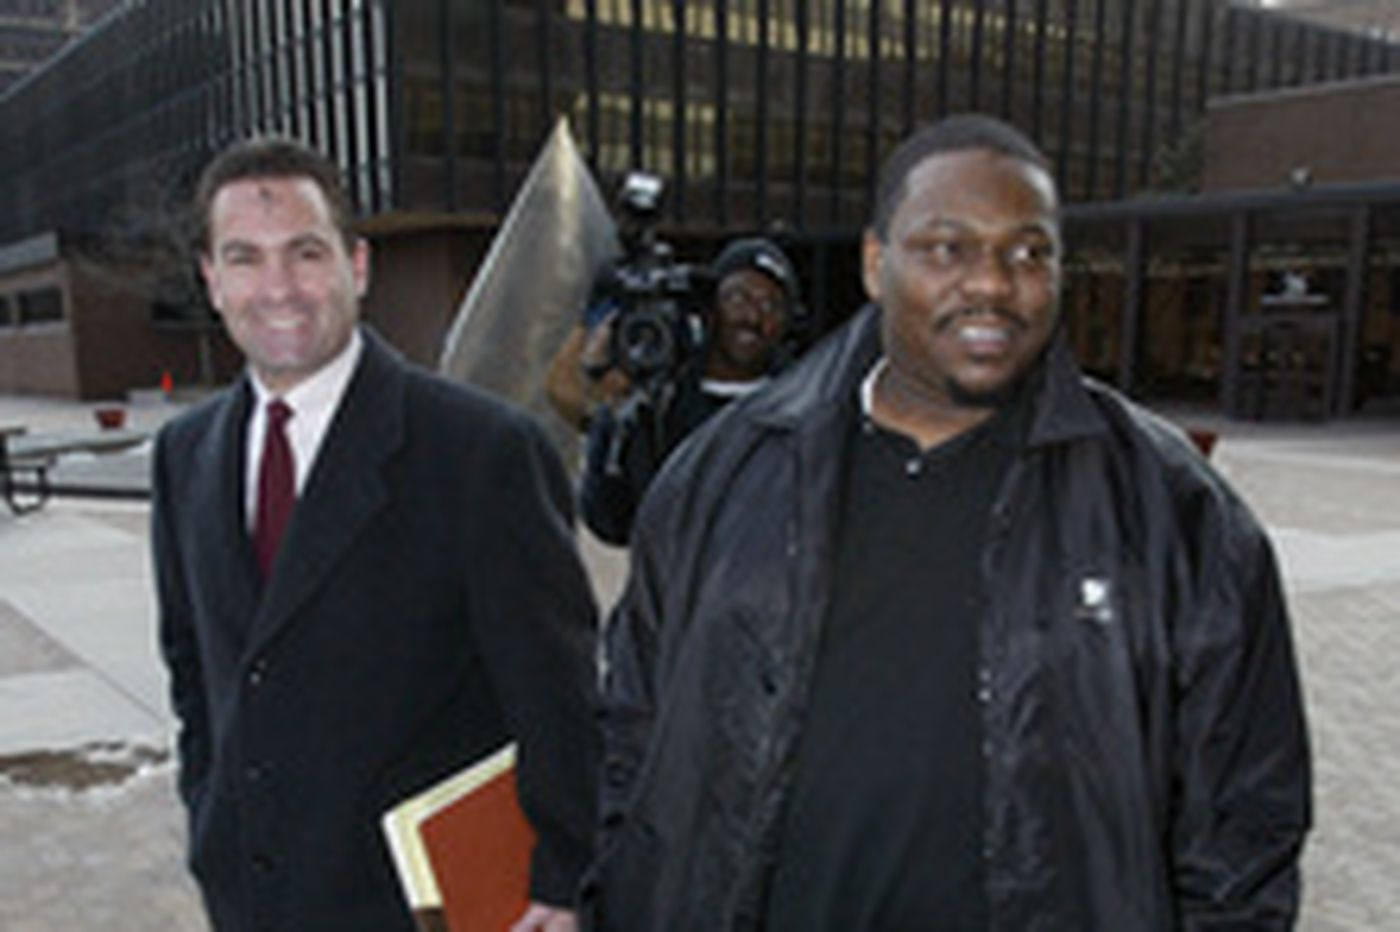 Beanie Sigel back in court, asked about drugs, friends